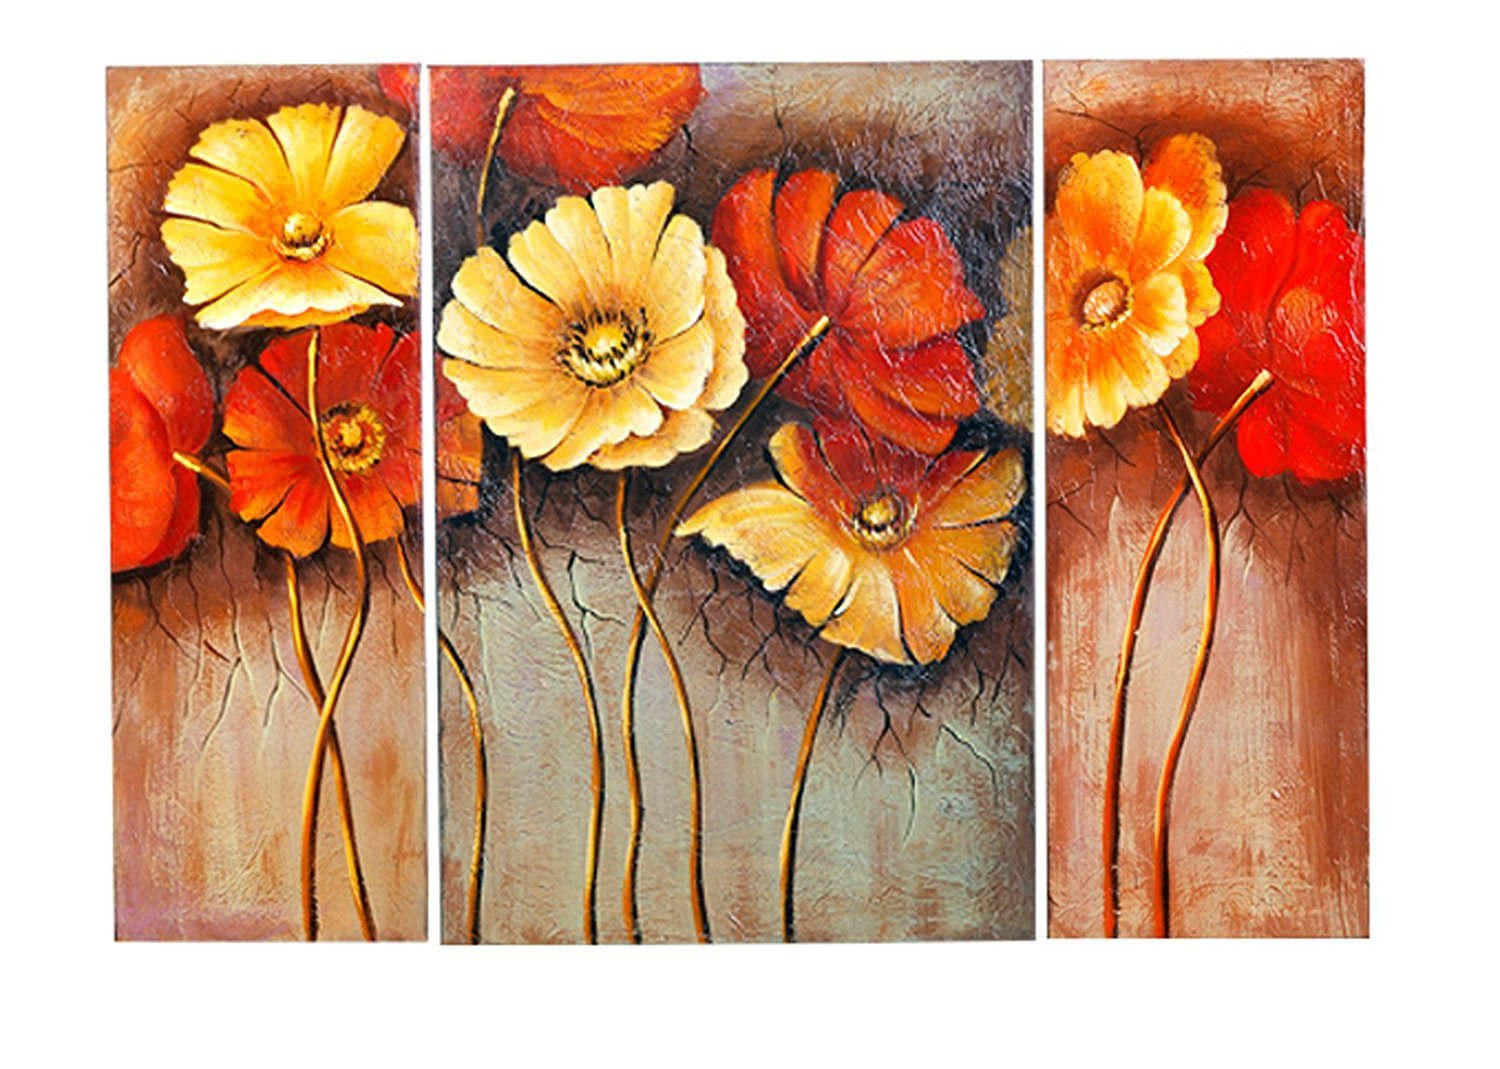 Framed stretched blooming poppy flowers oil painting 40x275h framed stretched blooming poppy flowers oil painting mightylinksfo